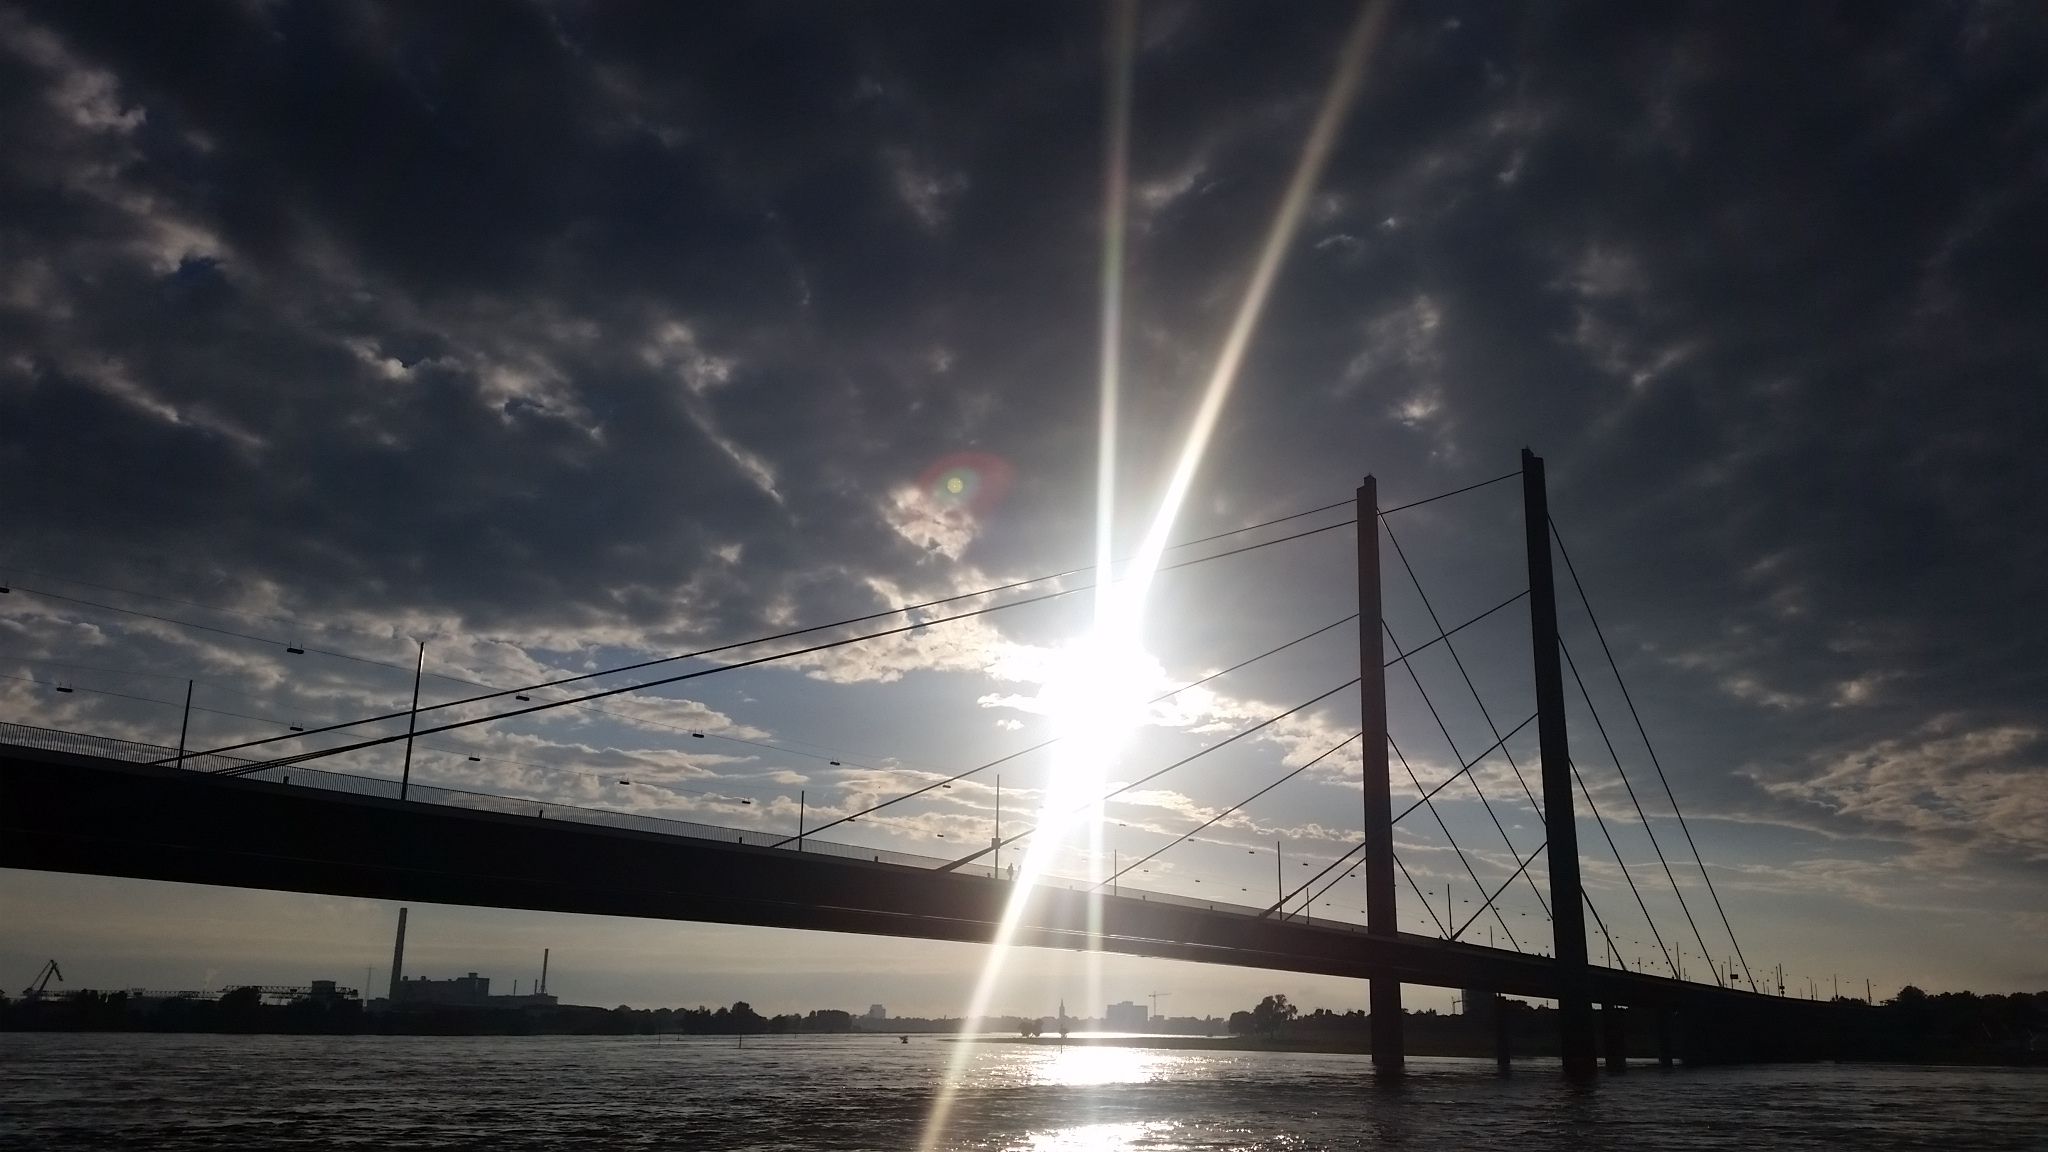 The sun setting over the Oberkassel Bridge at Dusseldorf